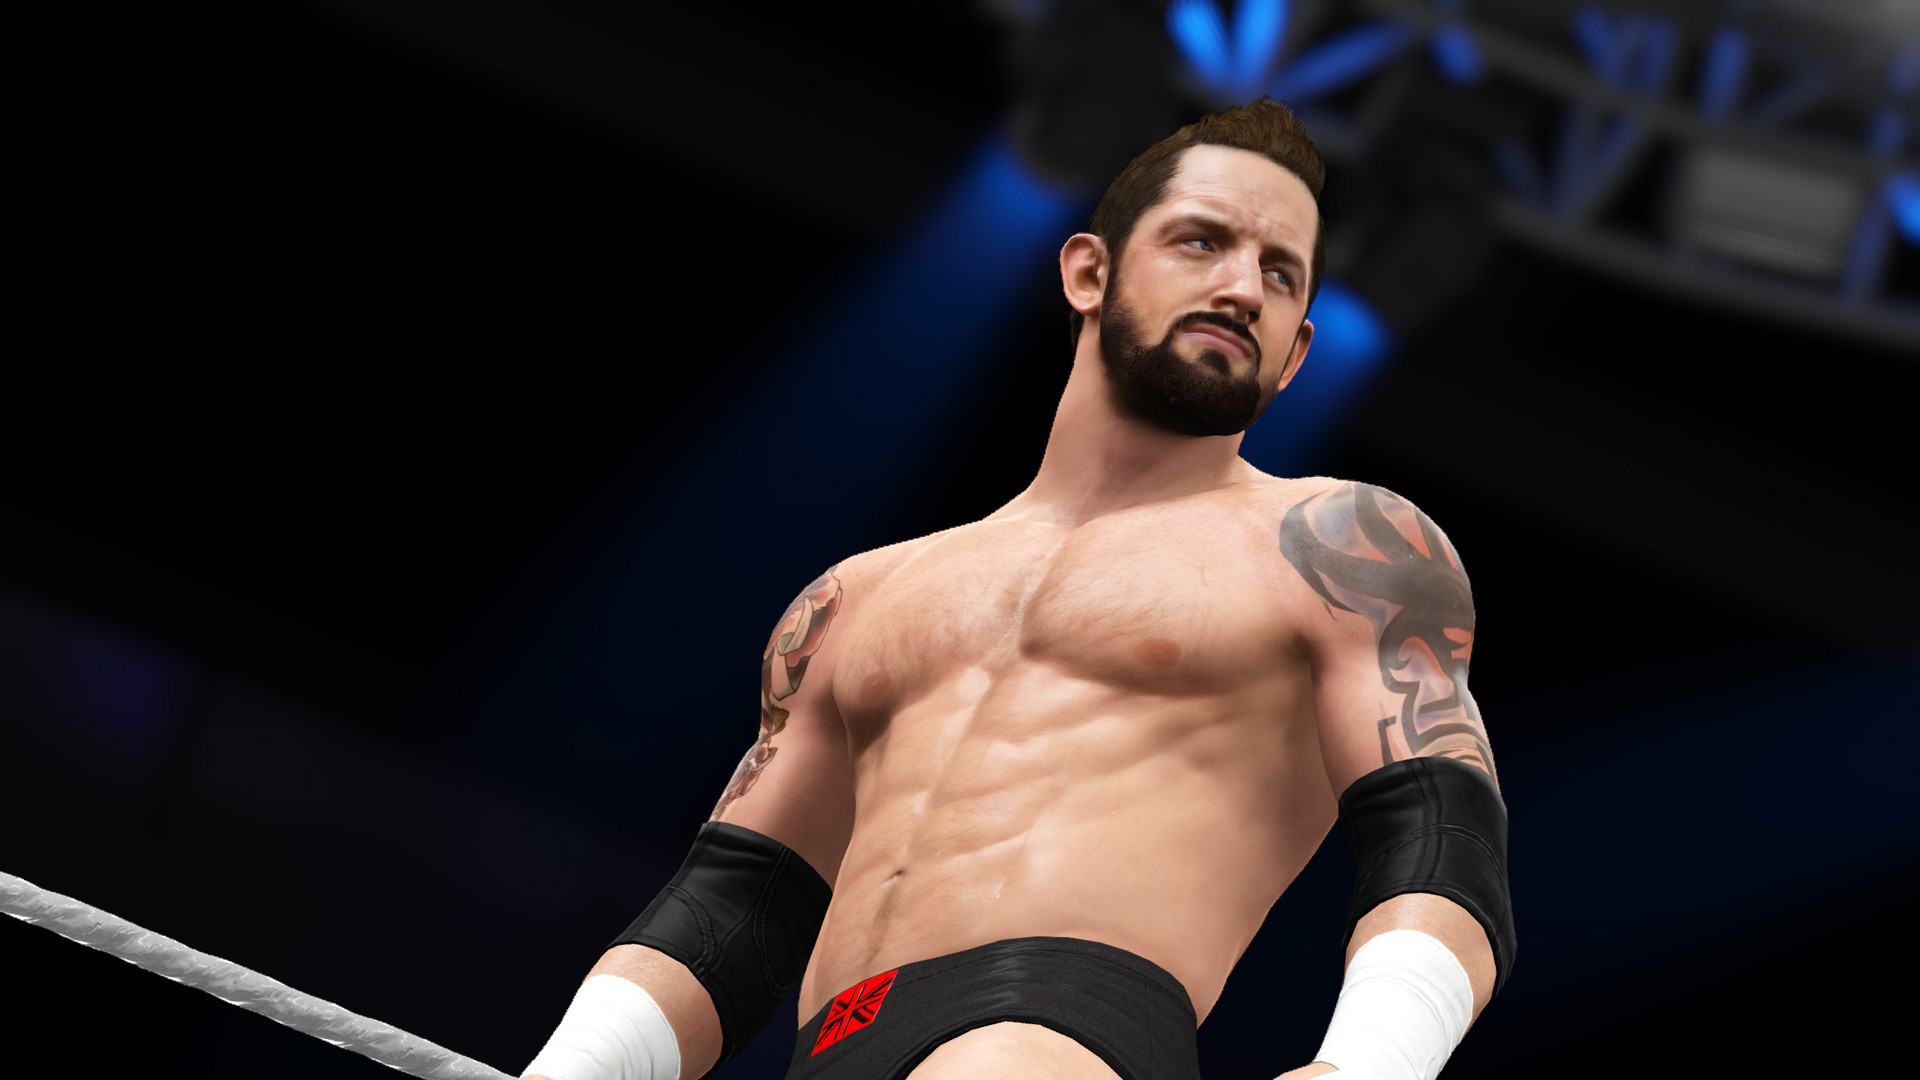 WWE 2K16 Wallpapers HD. Pictures of WWE 2K16